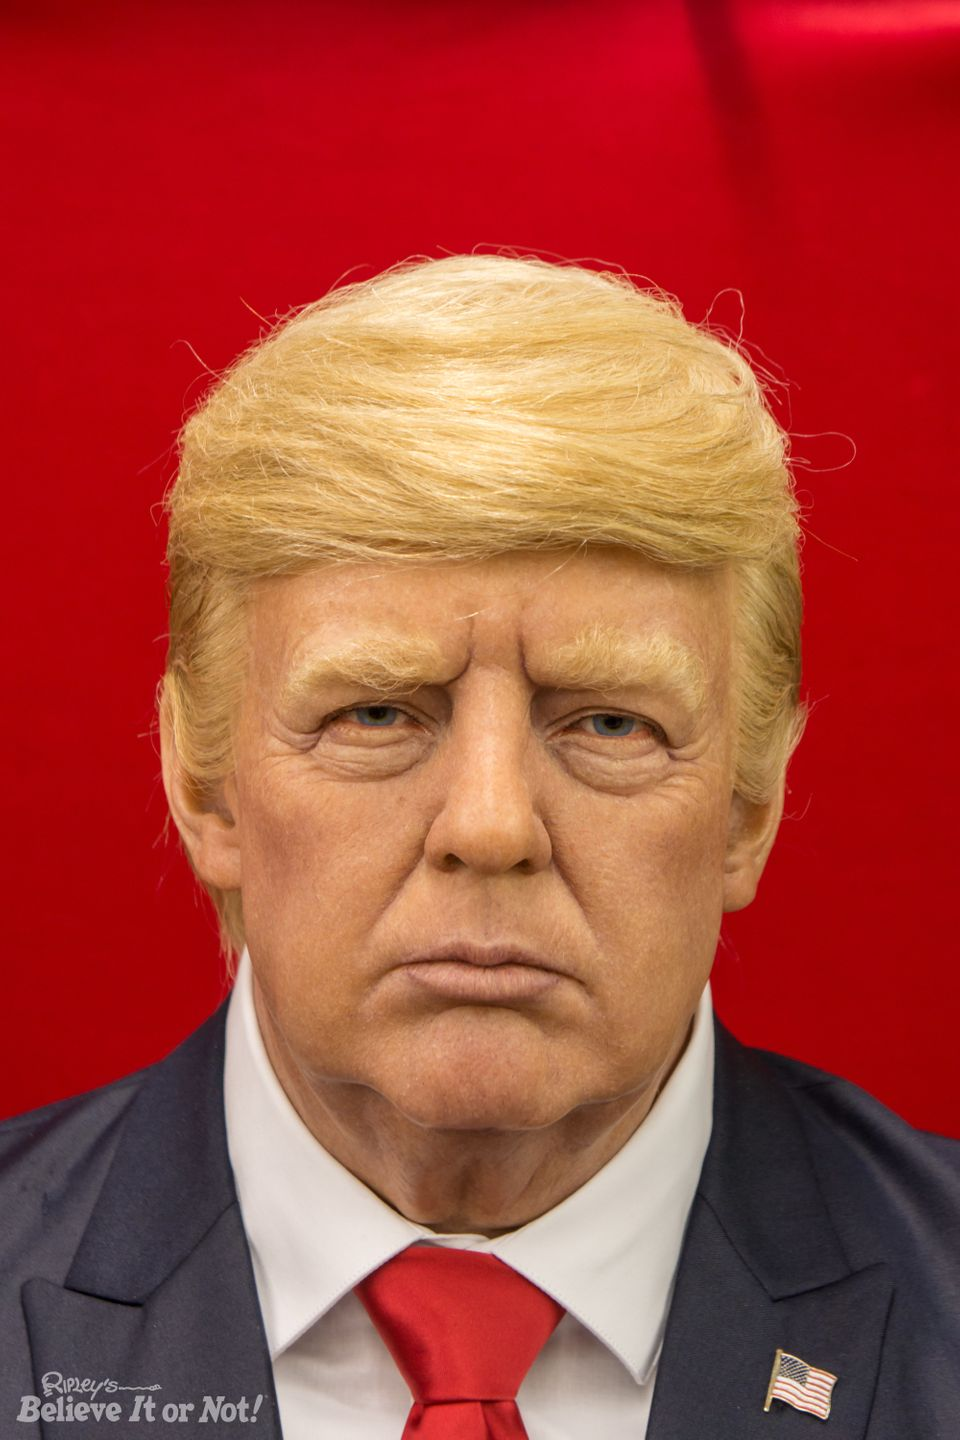 Ripley's has created three wax figures -- or dummies -- of President-elect Donald Trump.